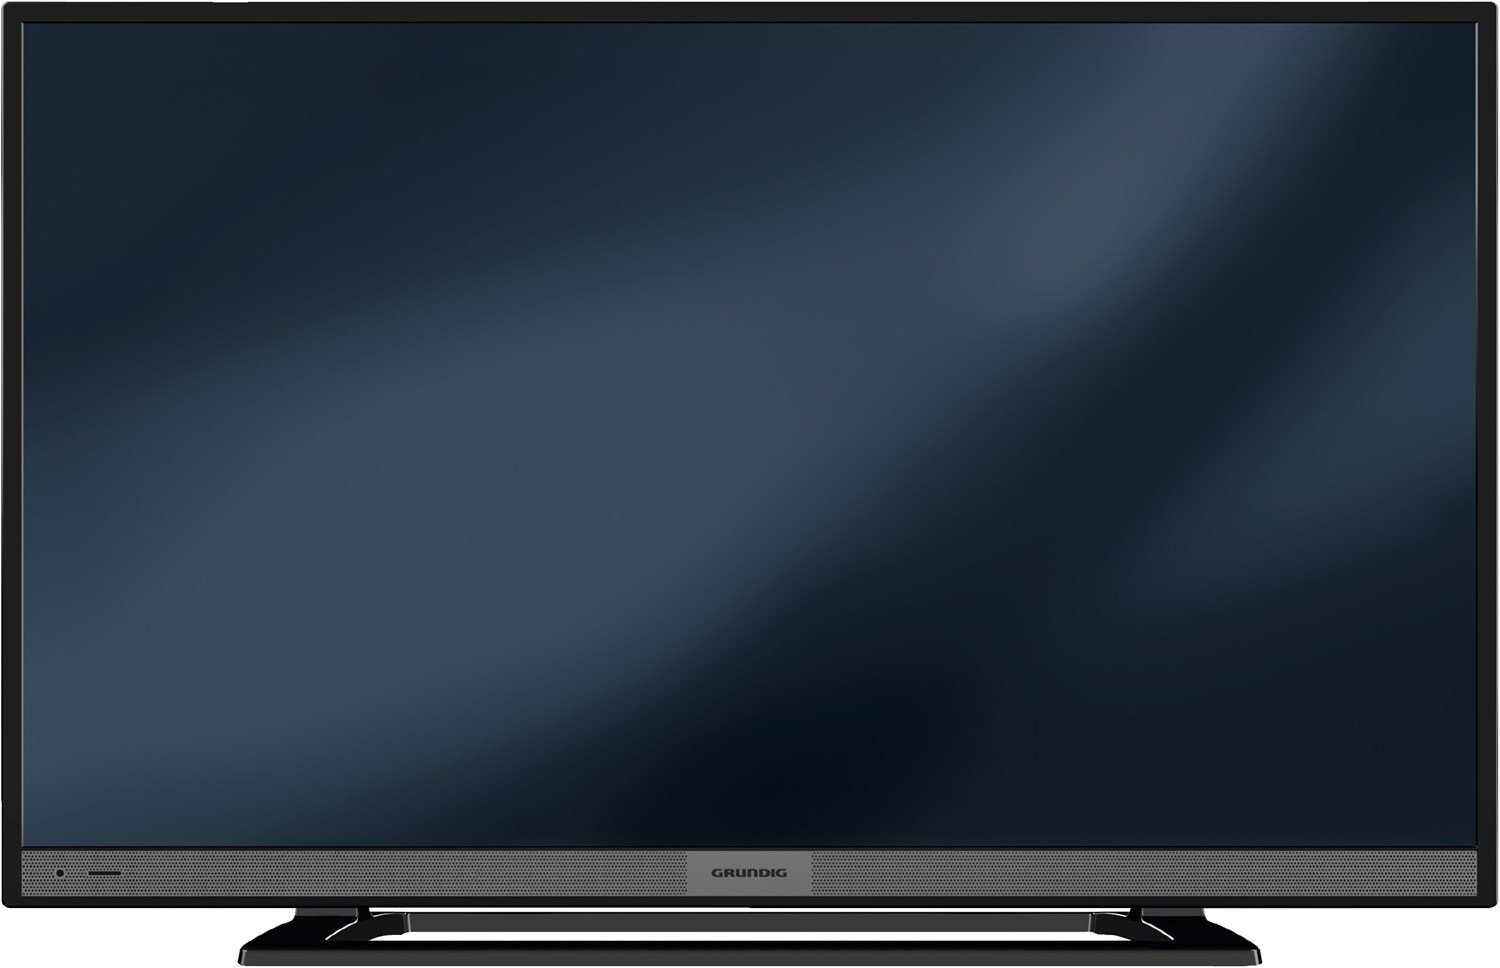 grundig 32 vle 597 bg 80 cm 32 zoll display lcd. Black Bedroom Furniture Sets. Home Design Ideas